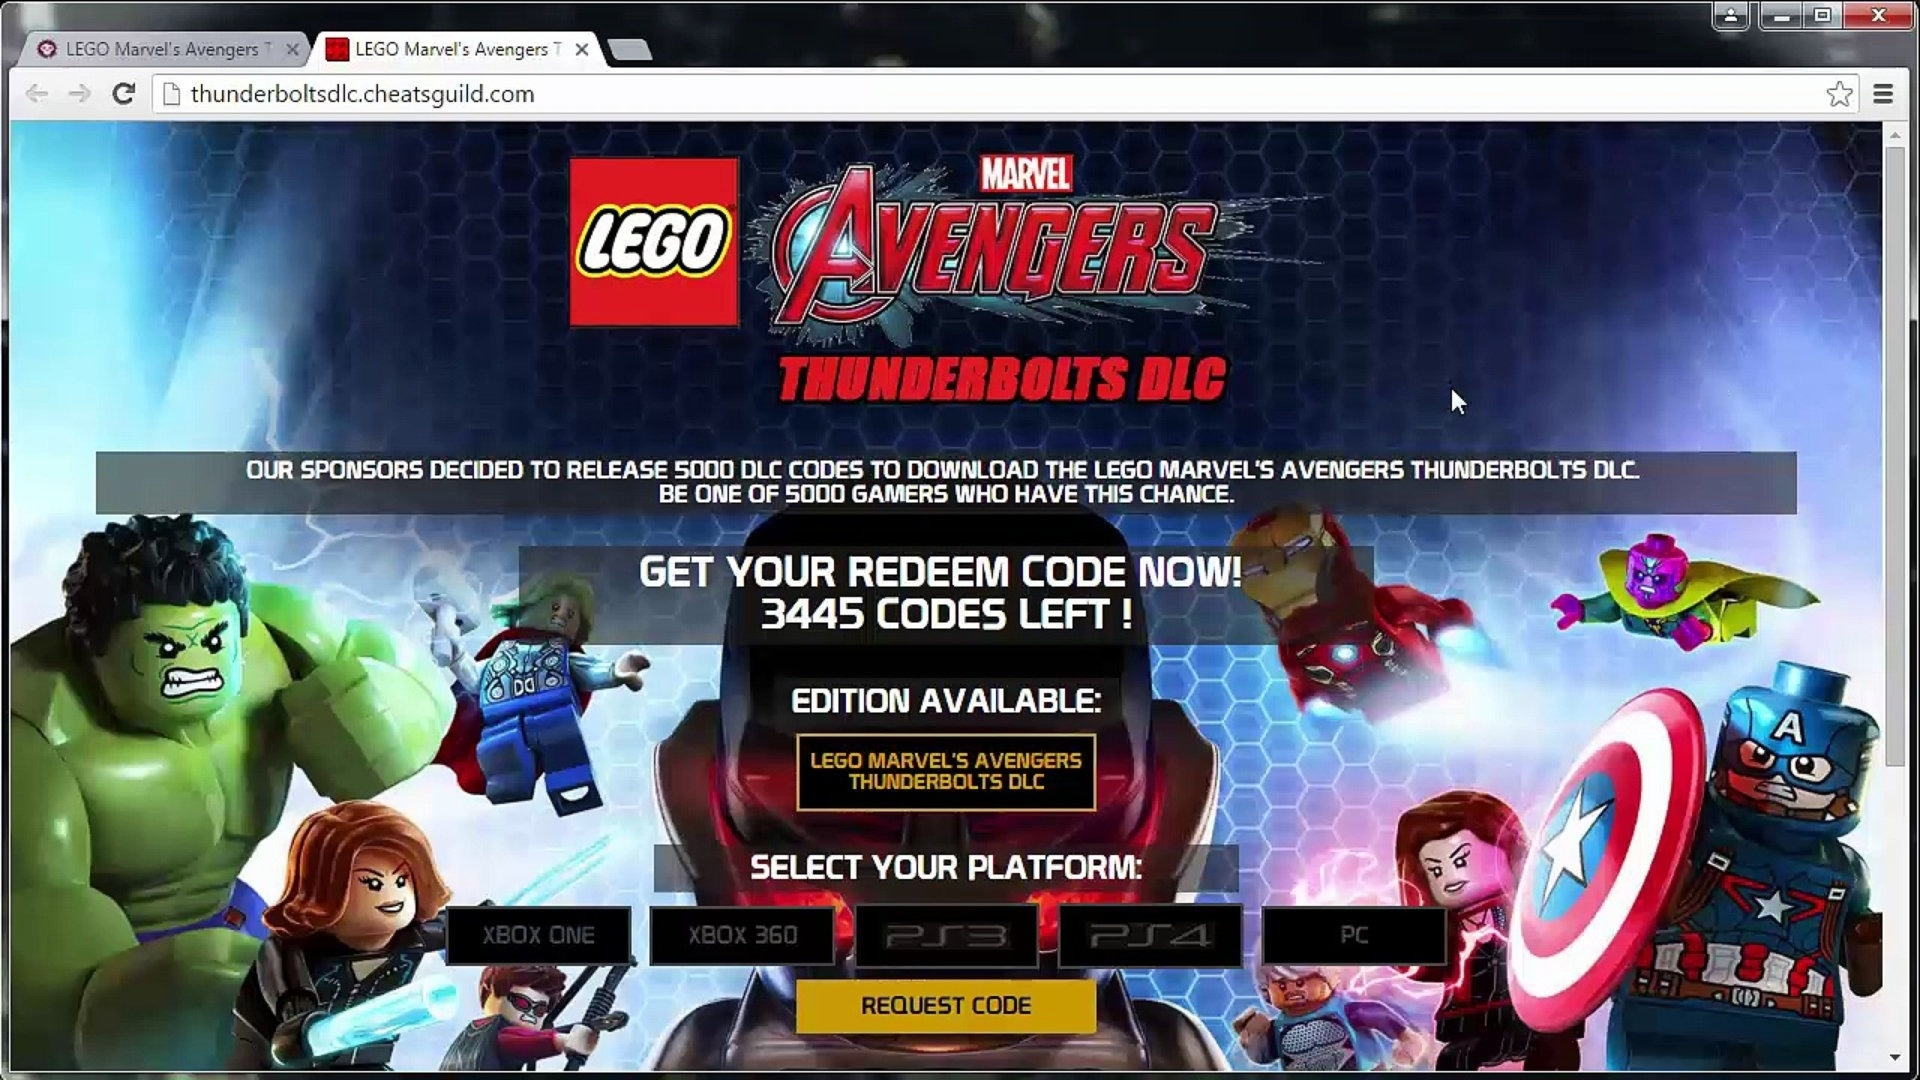 Lego Marvel's Avengers Thunderbolts Dlc Code Generator - Video  Codes For Lego Marvel Avengers